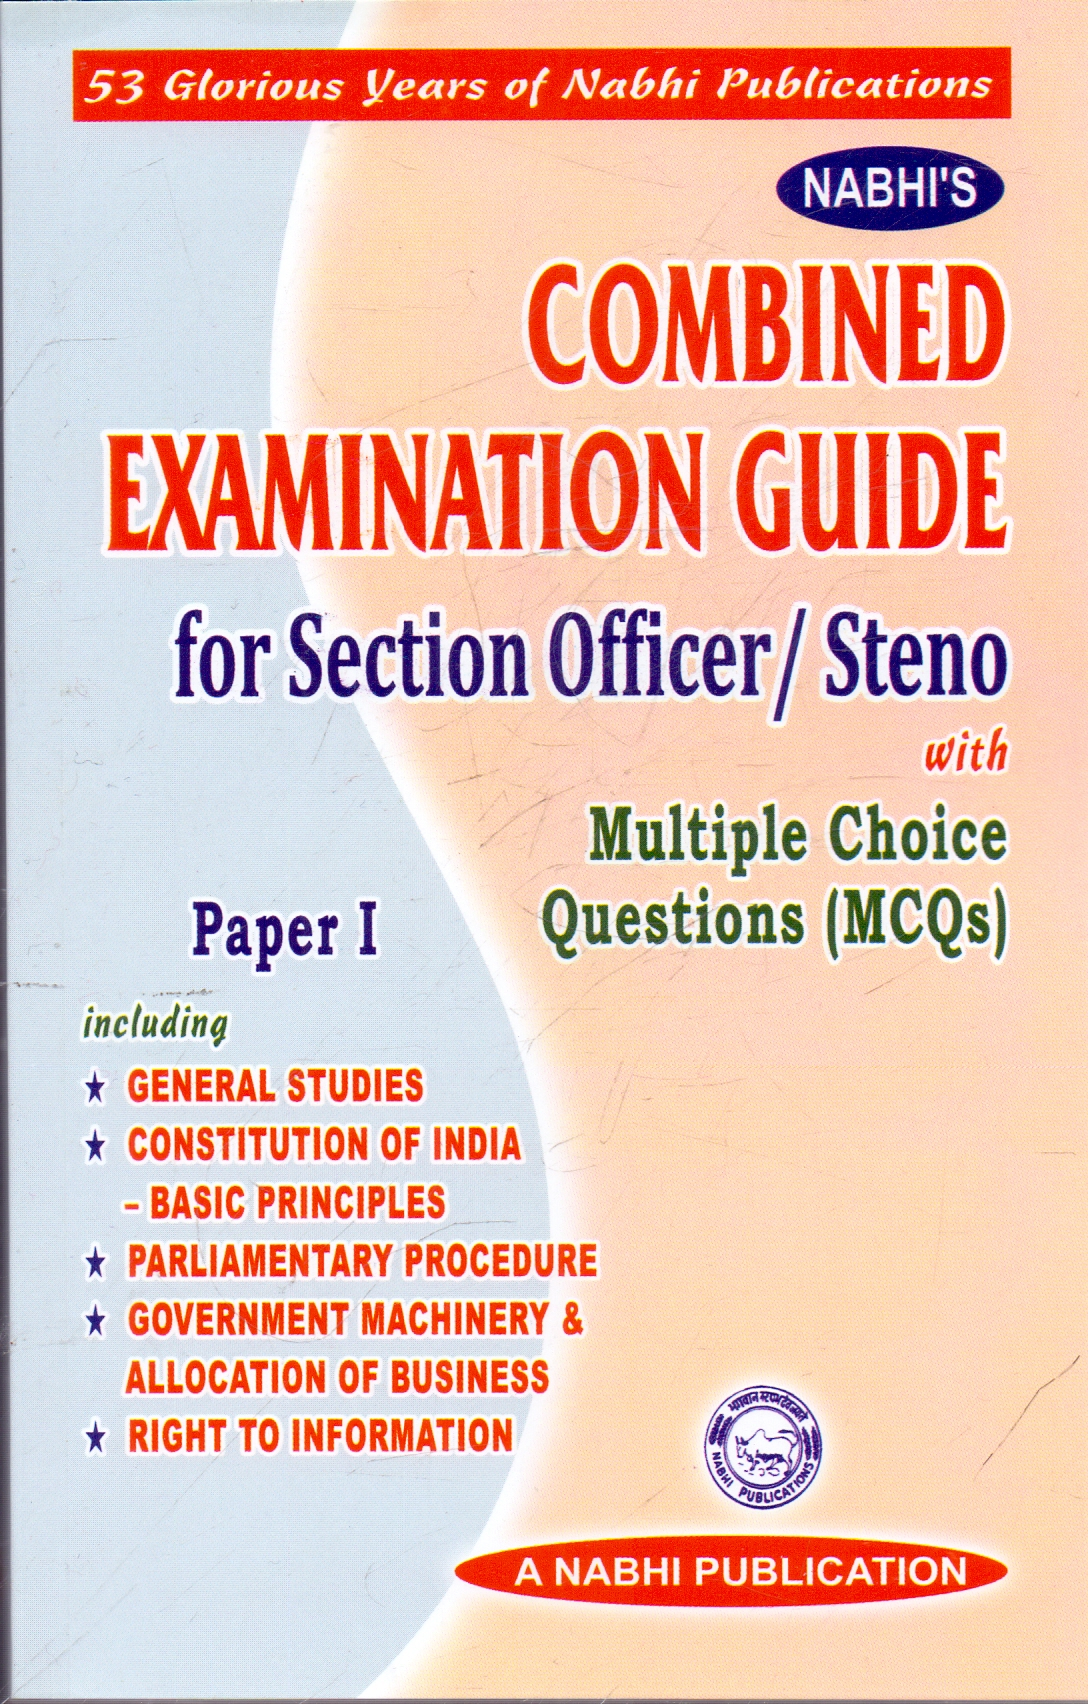 Combined Examination Guide for Section Officer Steno with Multiple Choice Questions (MCQs) Paper 1